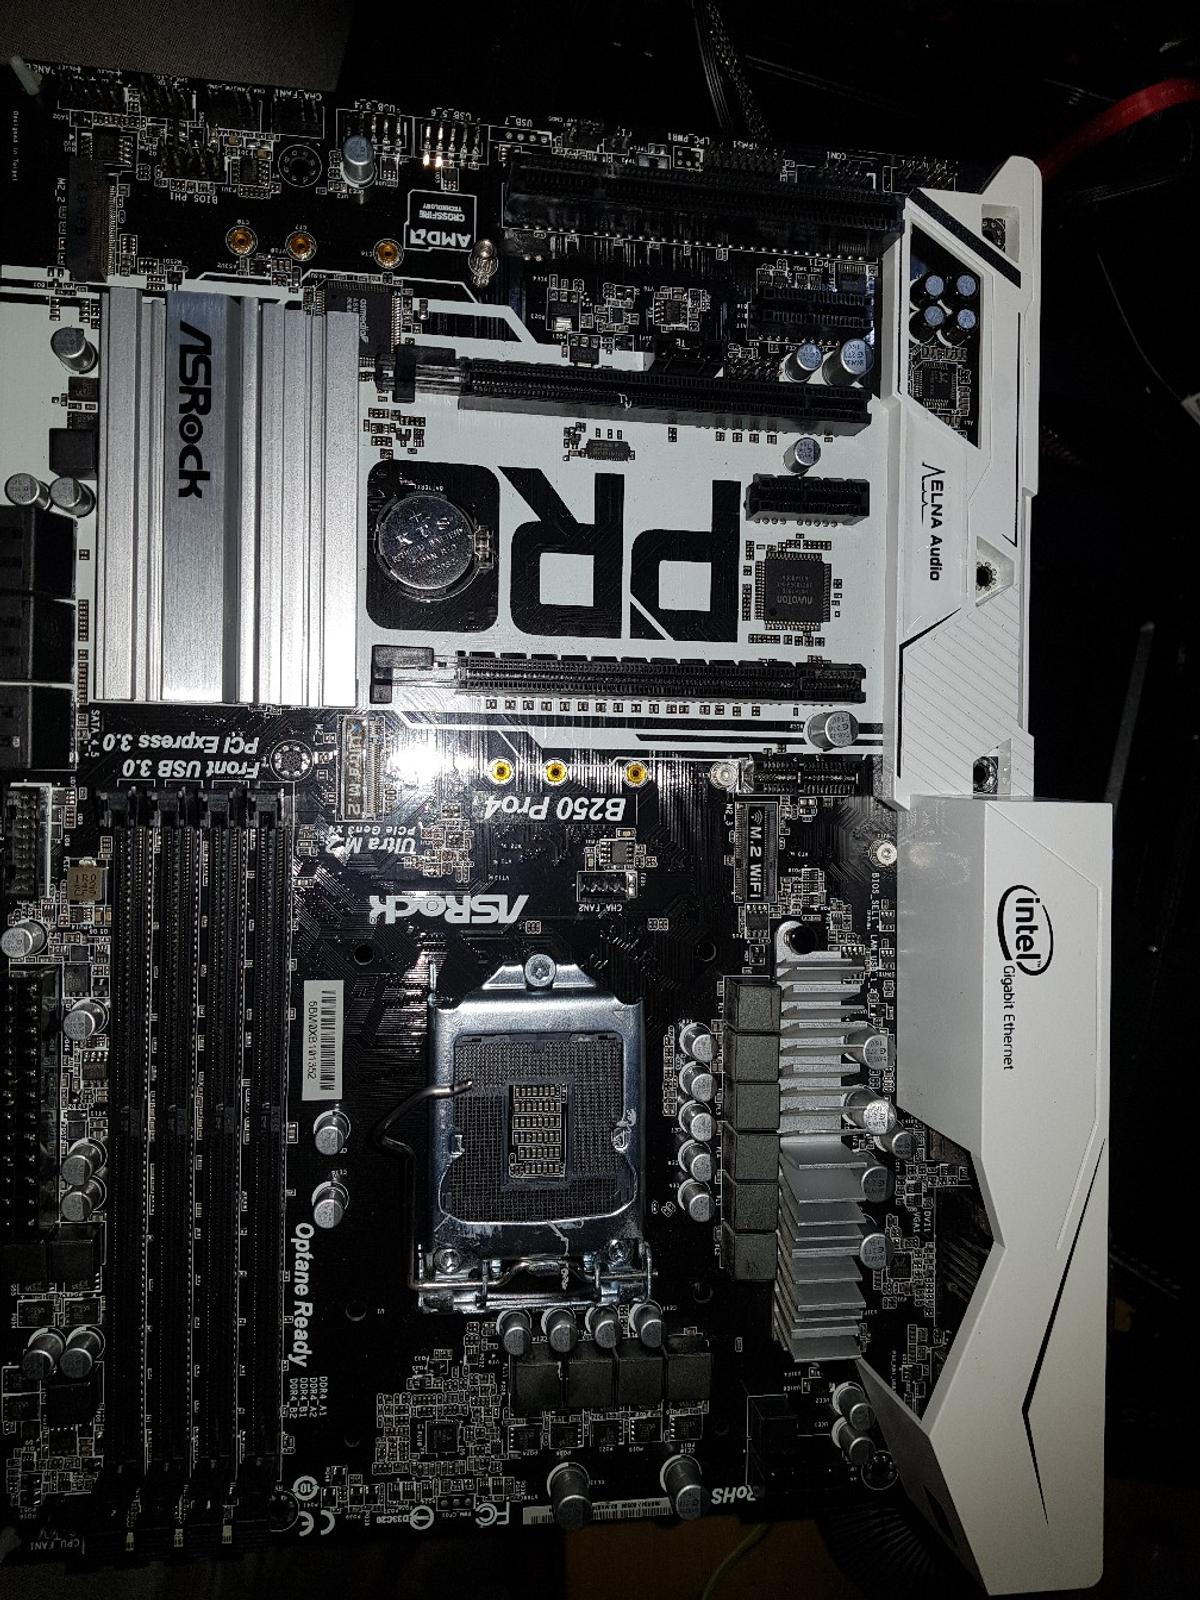 Asus motherboard Intel b250 chipset in OL8 Oldham for £60 00